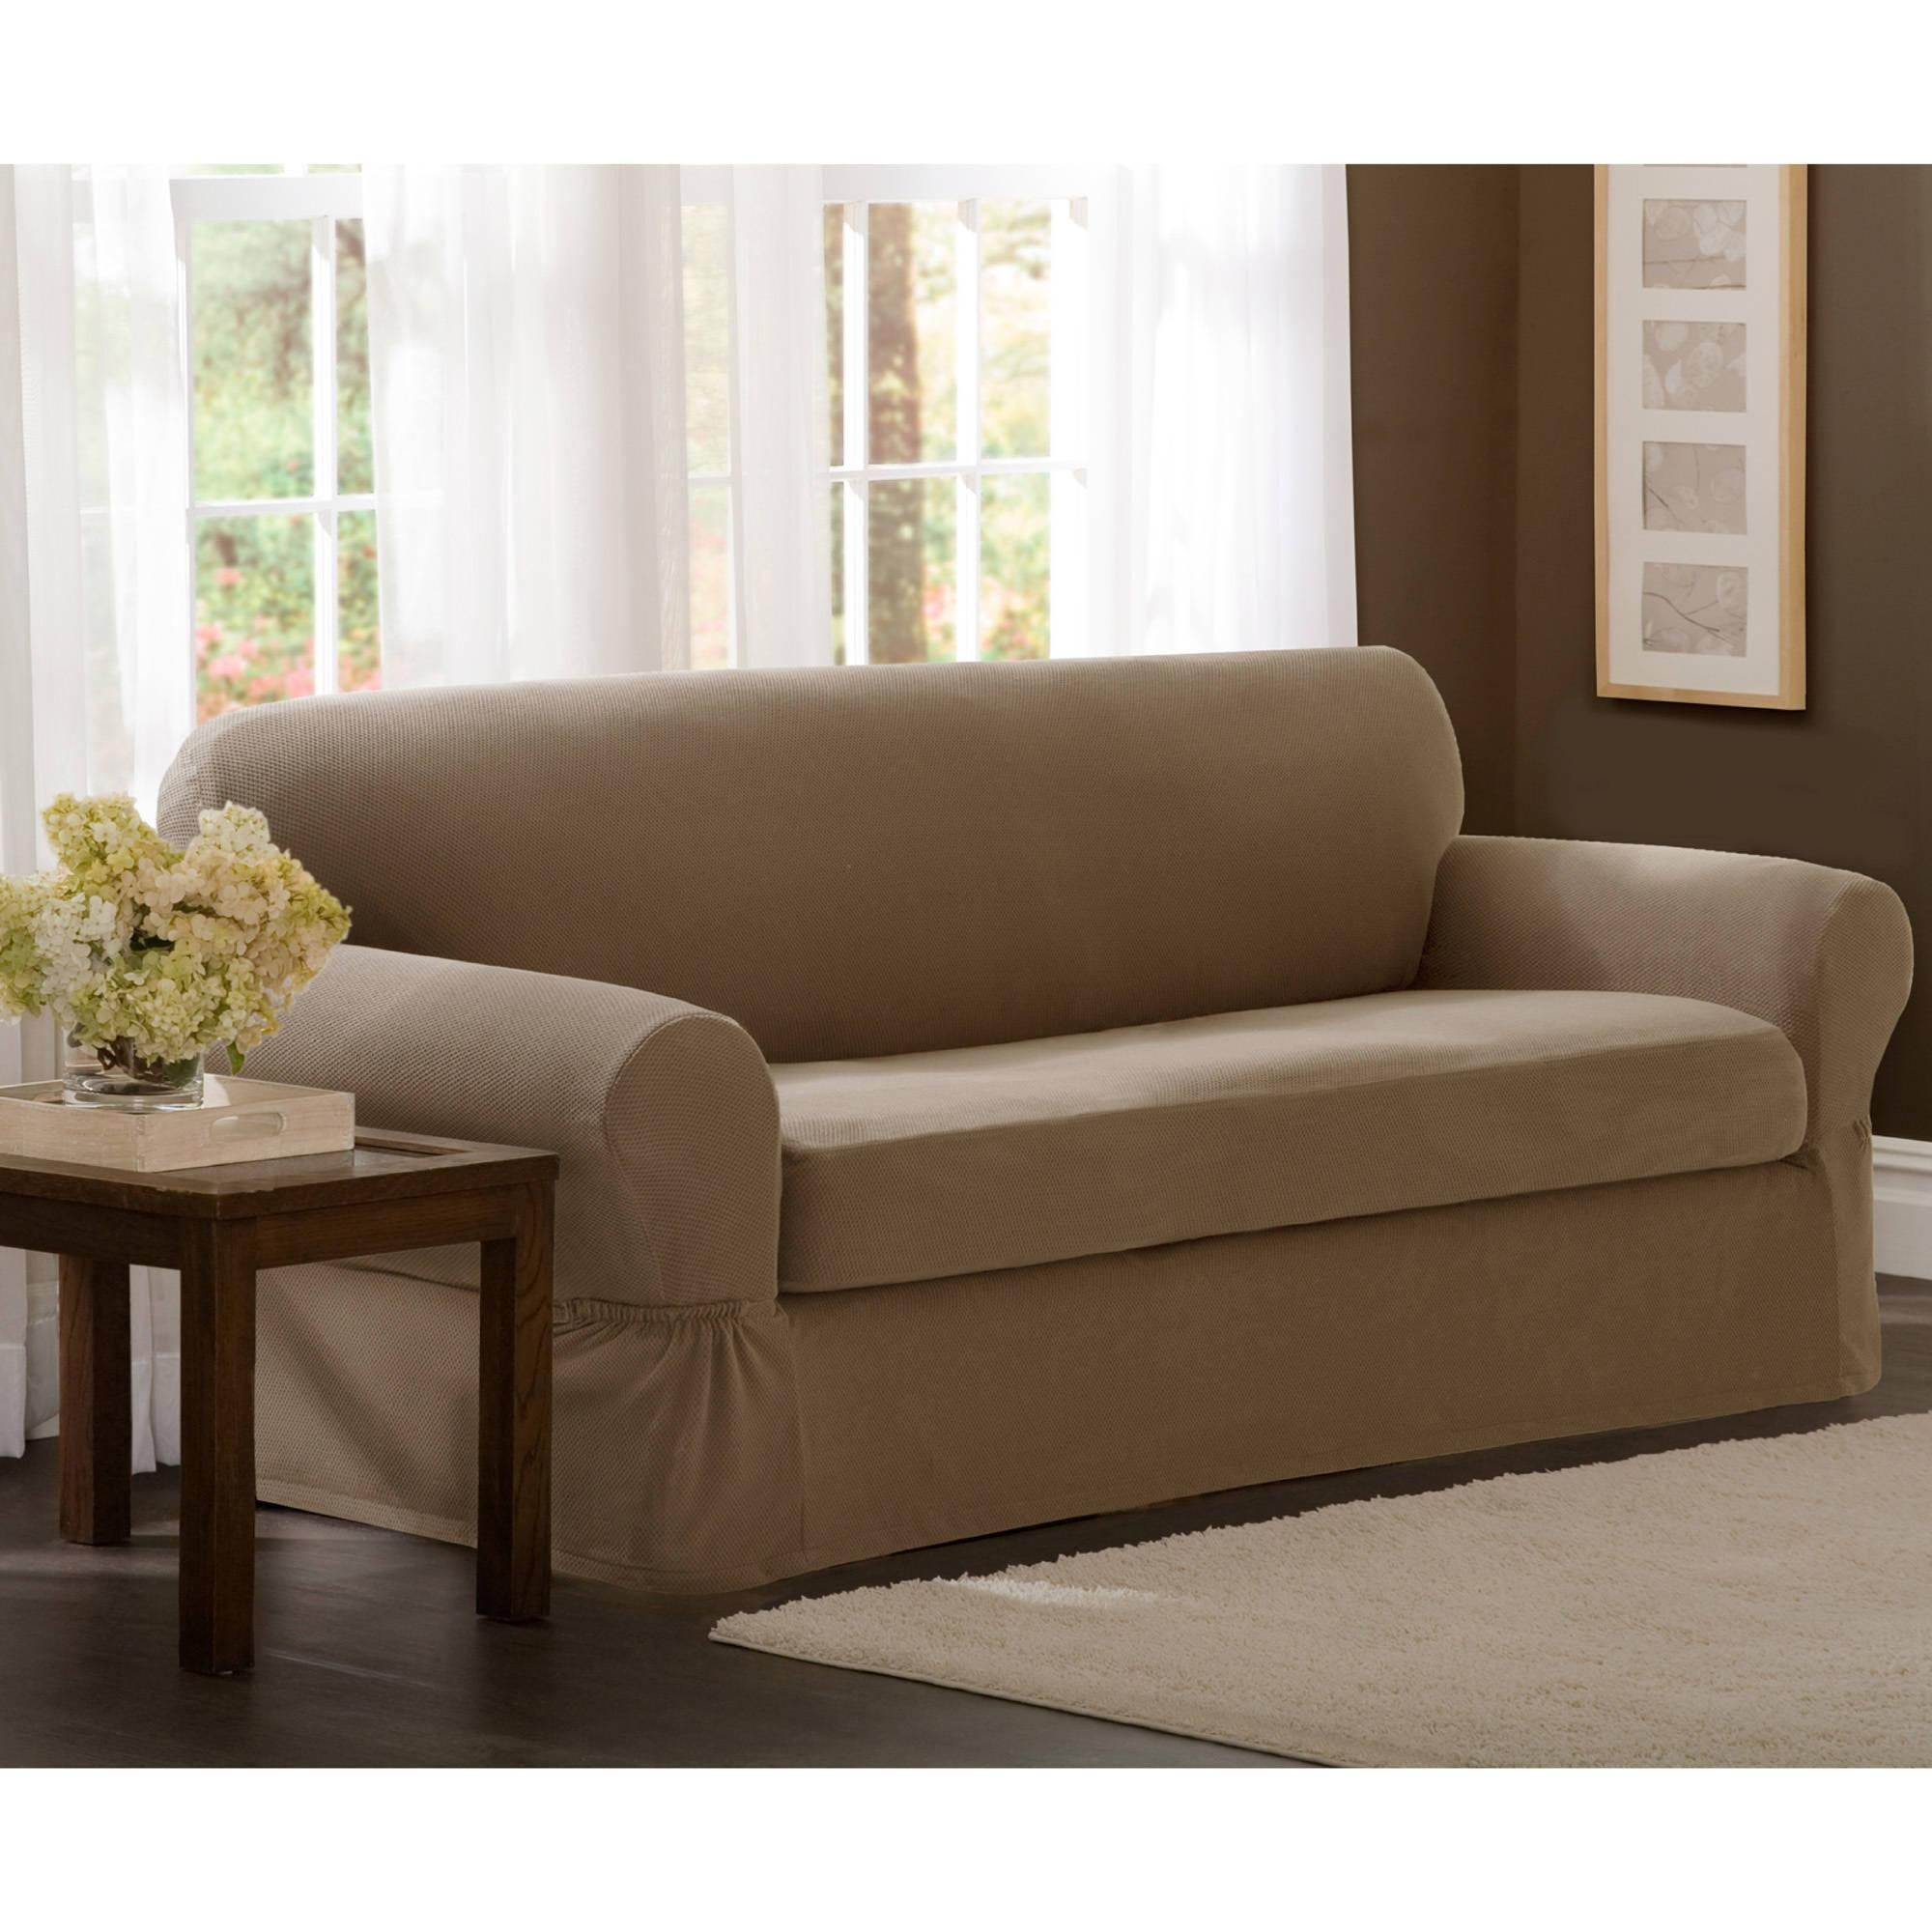 Maytex Stretch 2 Piece Sofa Slipcover – Walmart Pertaining To 3 Piece Sofa Slipcovers (Image 17 of 20)